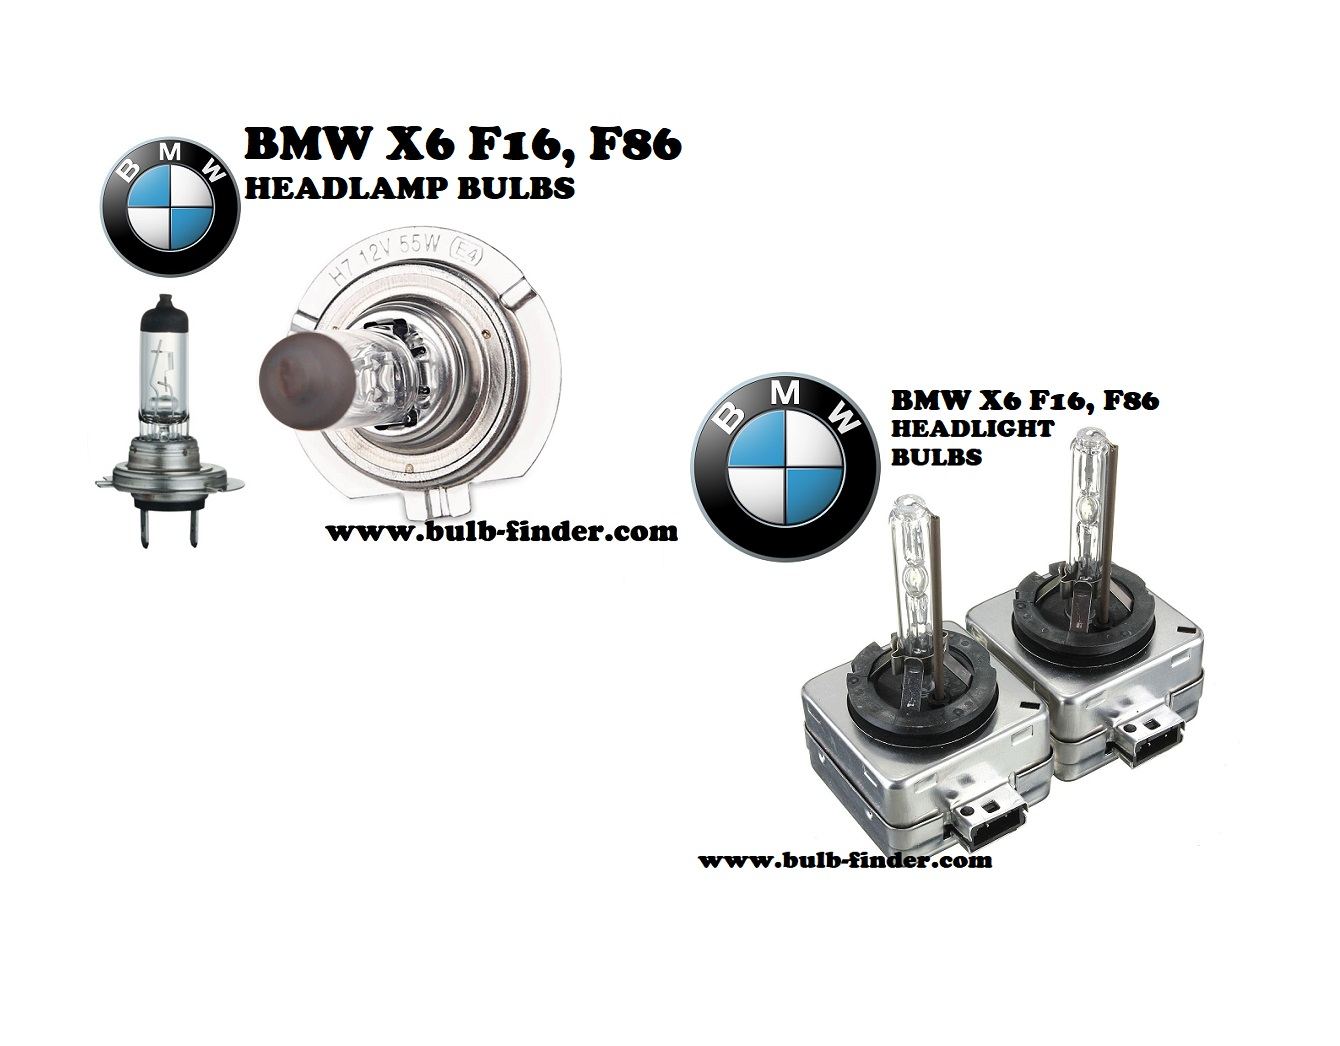 BMW X6 F16, F86 front headlamps bulbs type